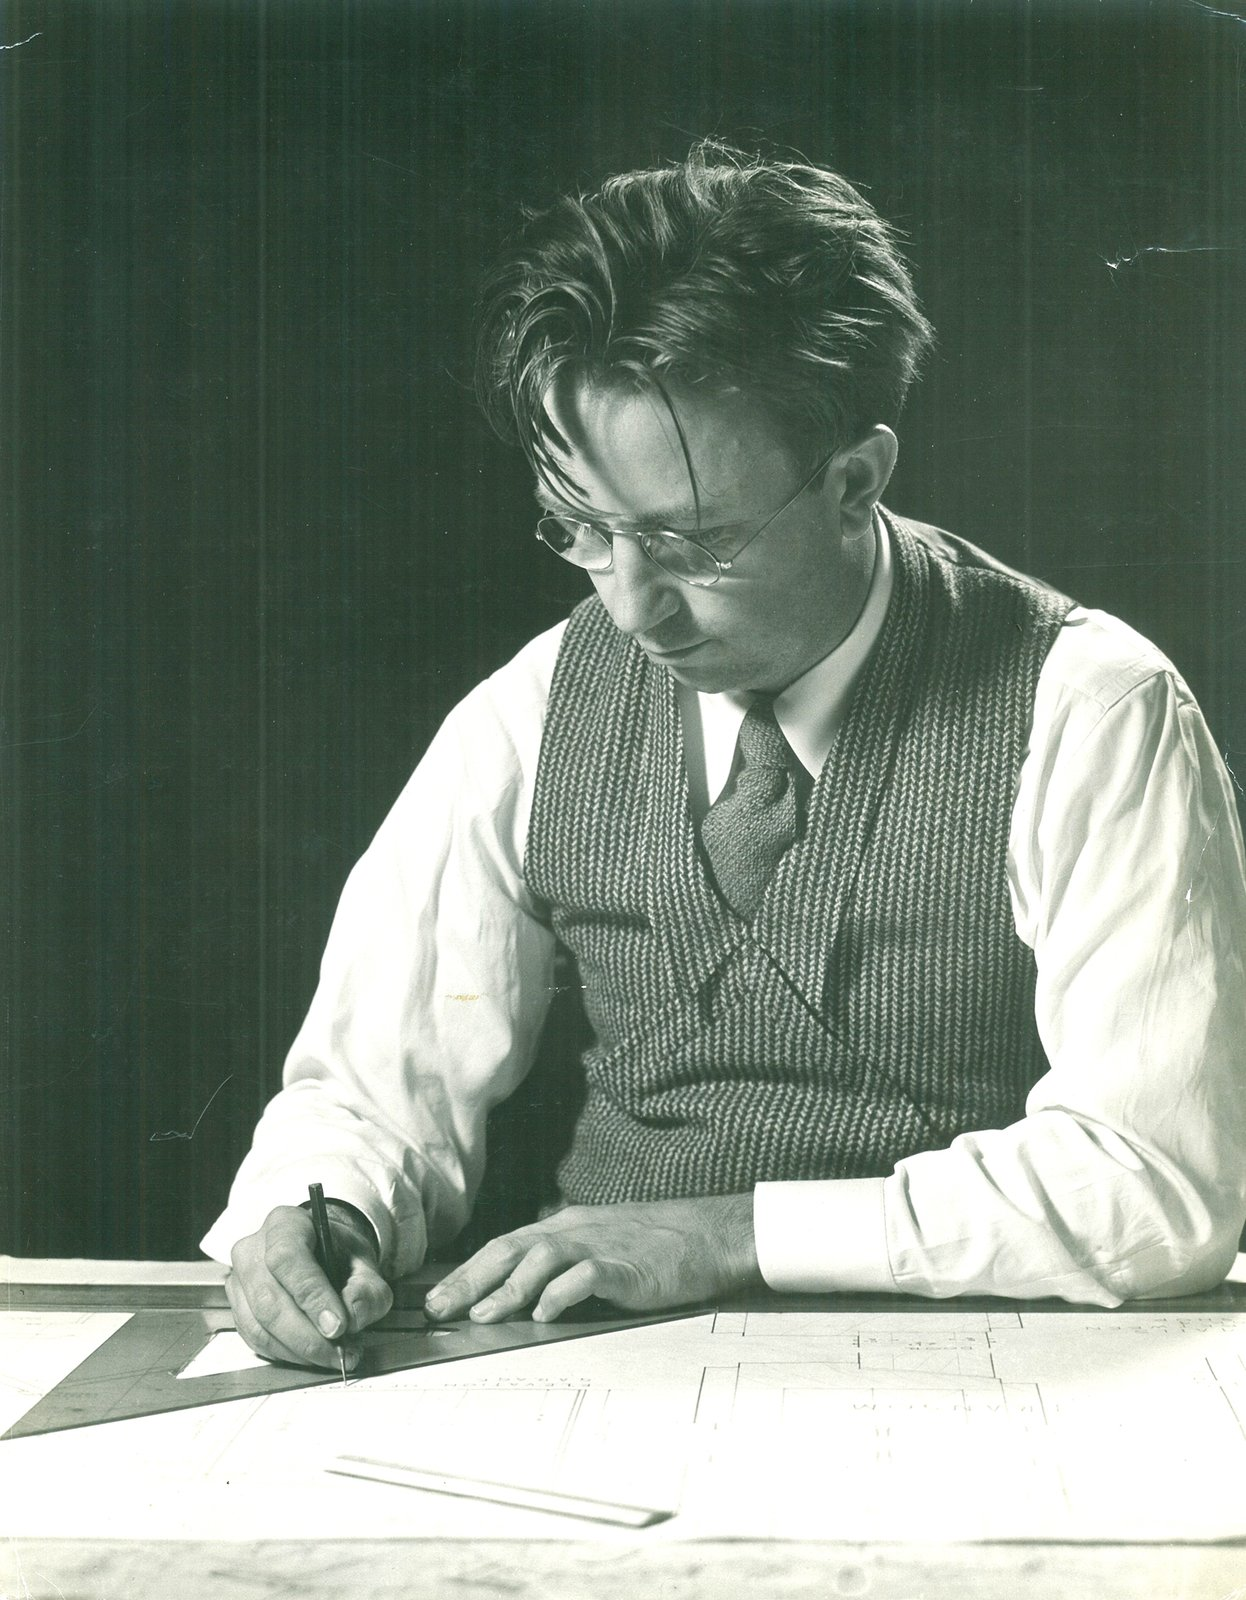 Alden B. Dow works at his drafting table in 1937, the year he wins the Diplome de Grand Prix for residential architecture at the Paris International Exposition. The fifth of Herbert and Grace Dow's seven children, Alden graduated from Midland High School and studied chemical and mechanical engineering at the University of Michigan before leaving for the Columbia University School of Architecture. In 1933, he spent a summer as a Taliesin Fellow under the tutelage of Frank Lloyd Wright, with whom he struck up a lifelong friendship.  Photo 2 of 8 in Alden B. Dow: The Mastermind of Midwestern Modernism